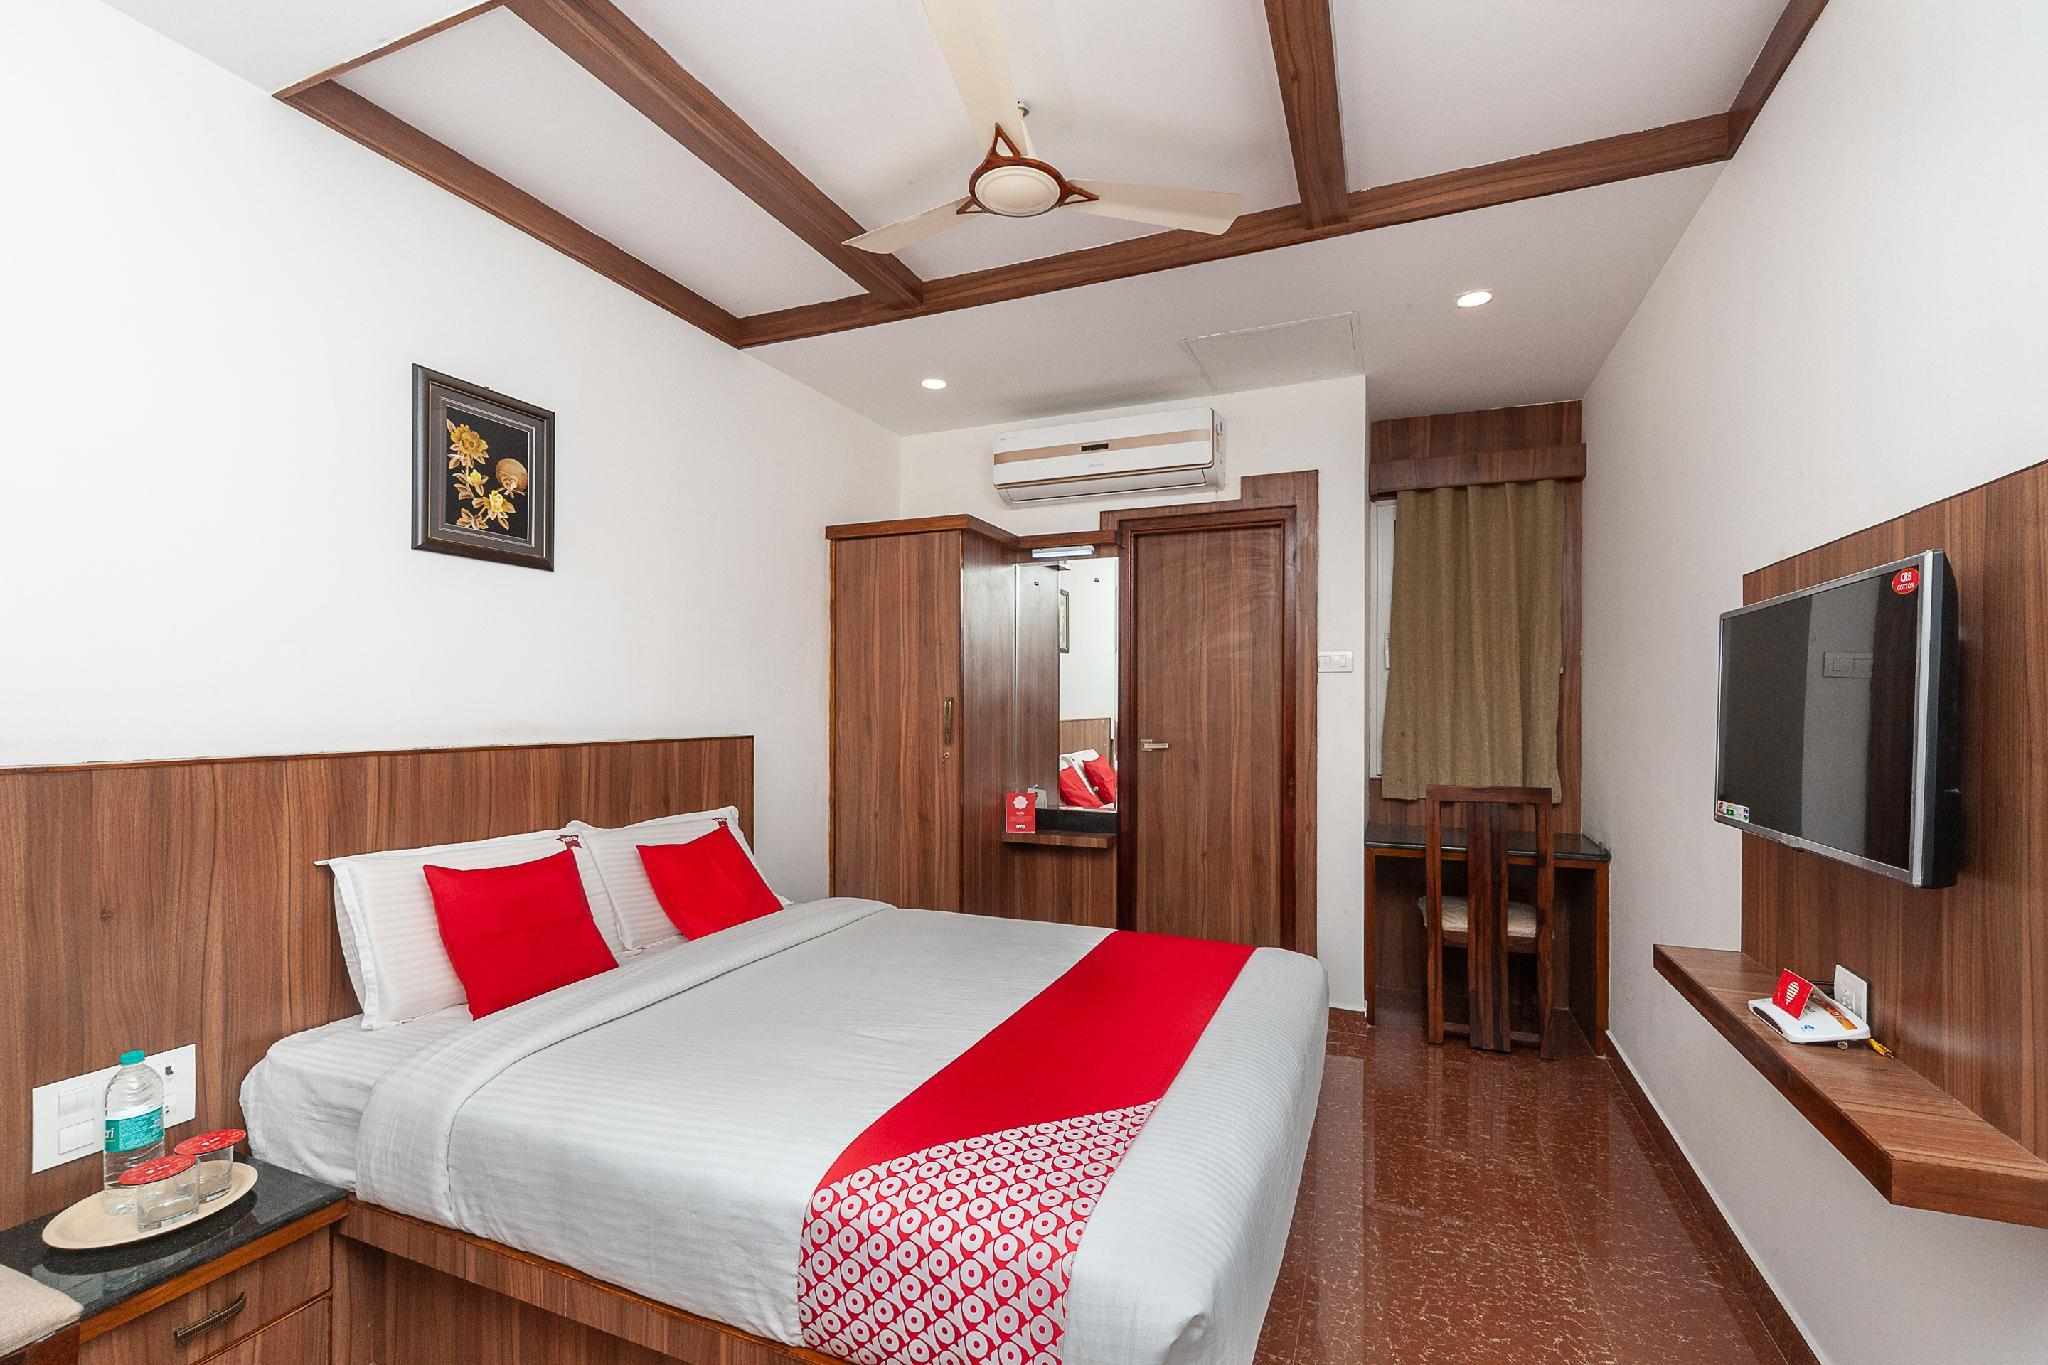 OYO 29859 Rds Guest House, Vellore